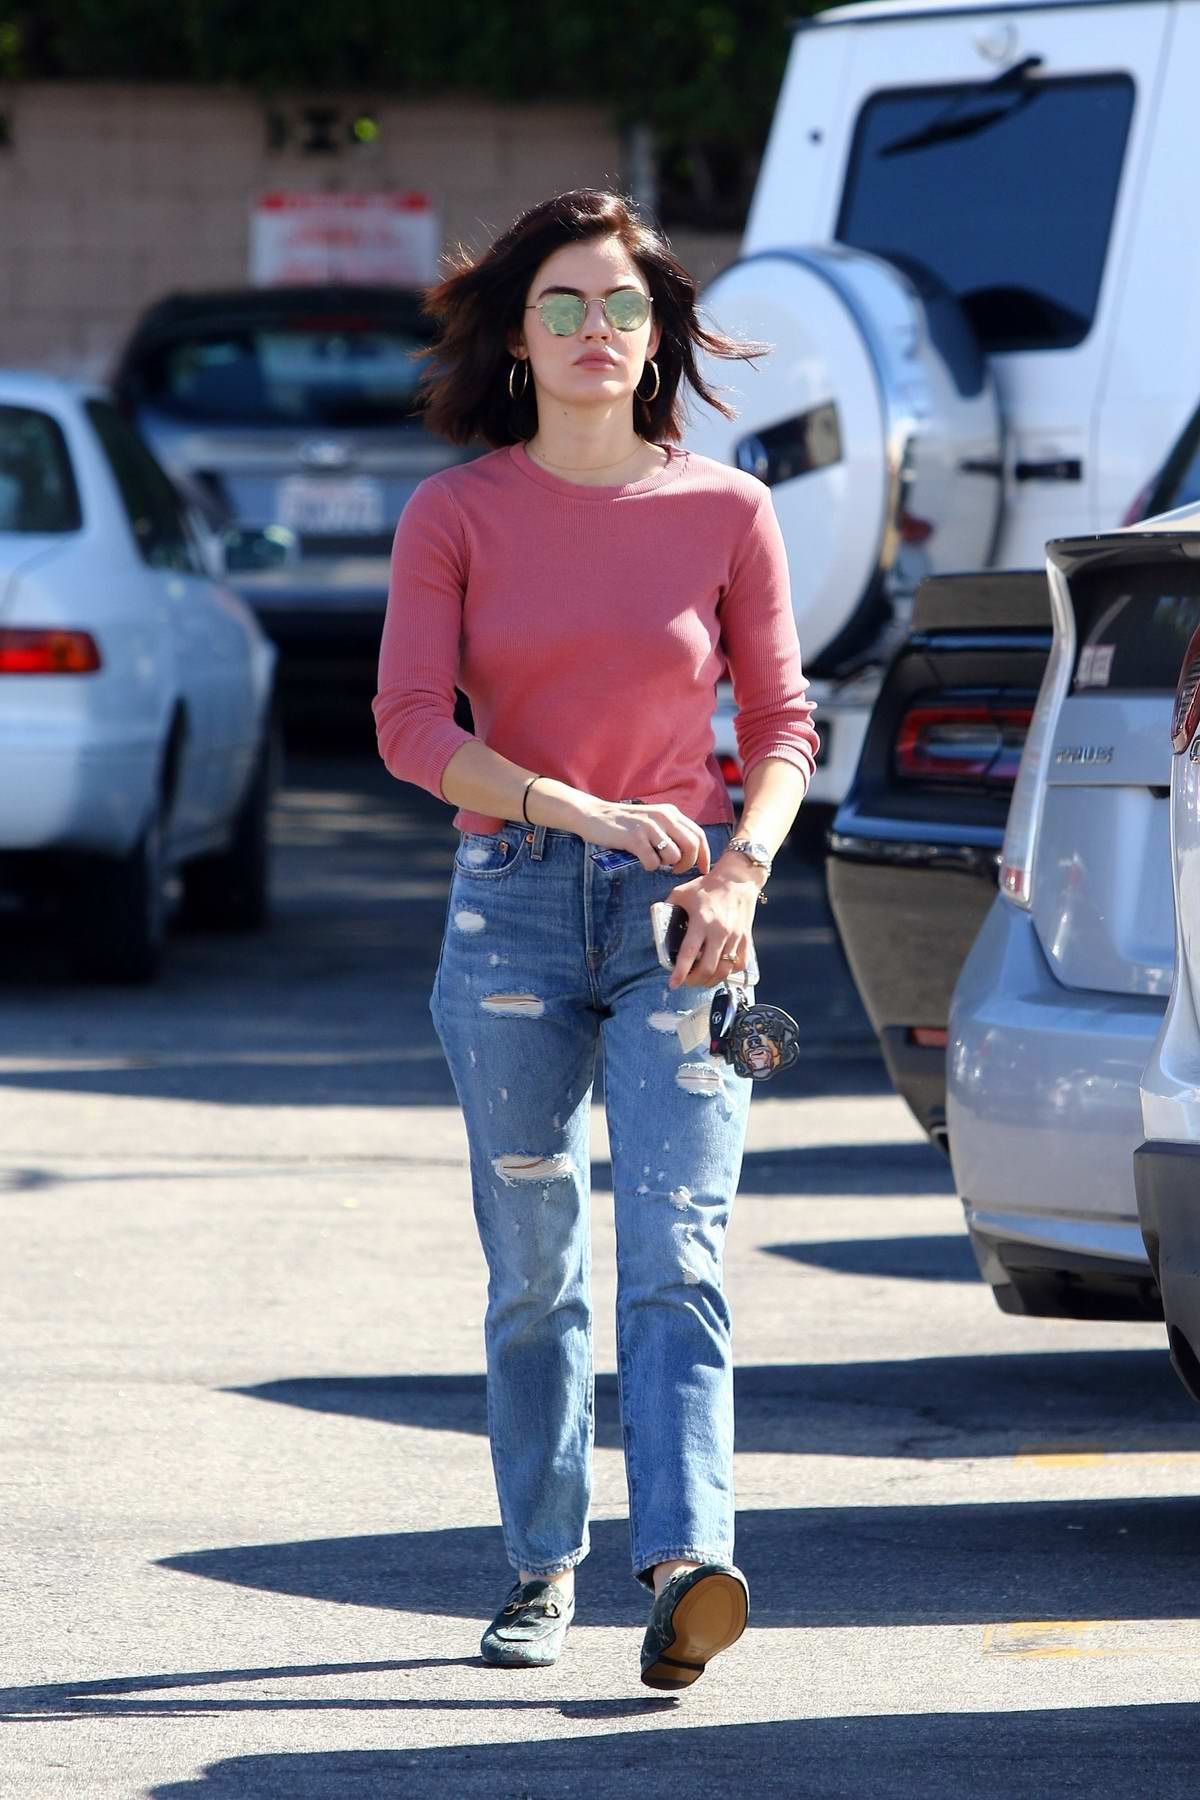 Lucy Hale stops by Starbucks to pick up an iced coffee and an iced tea while out in Studio City, Los Angeles